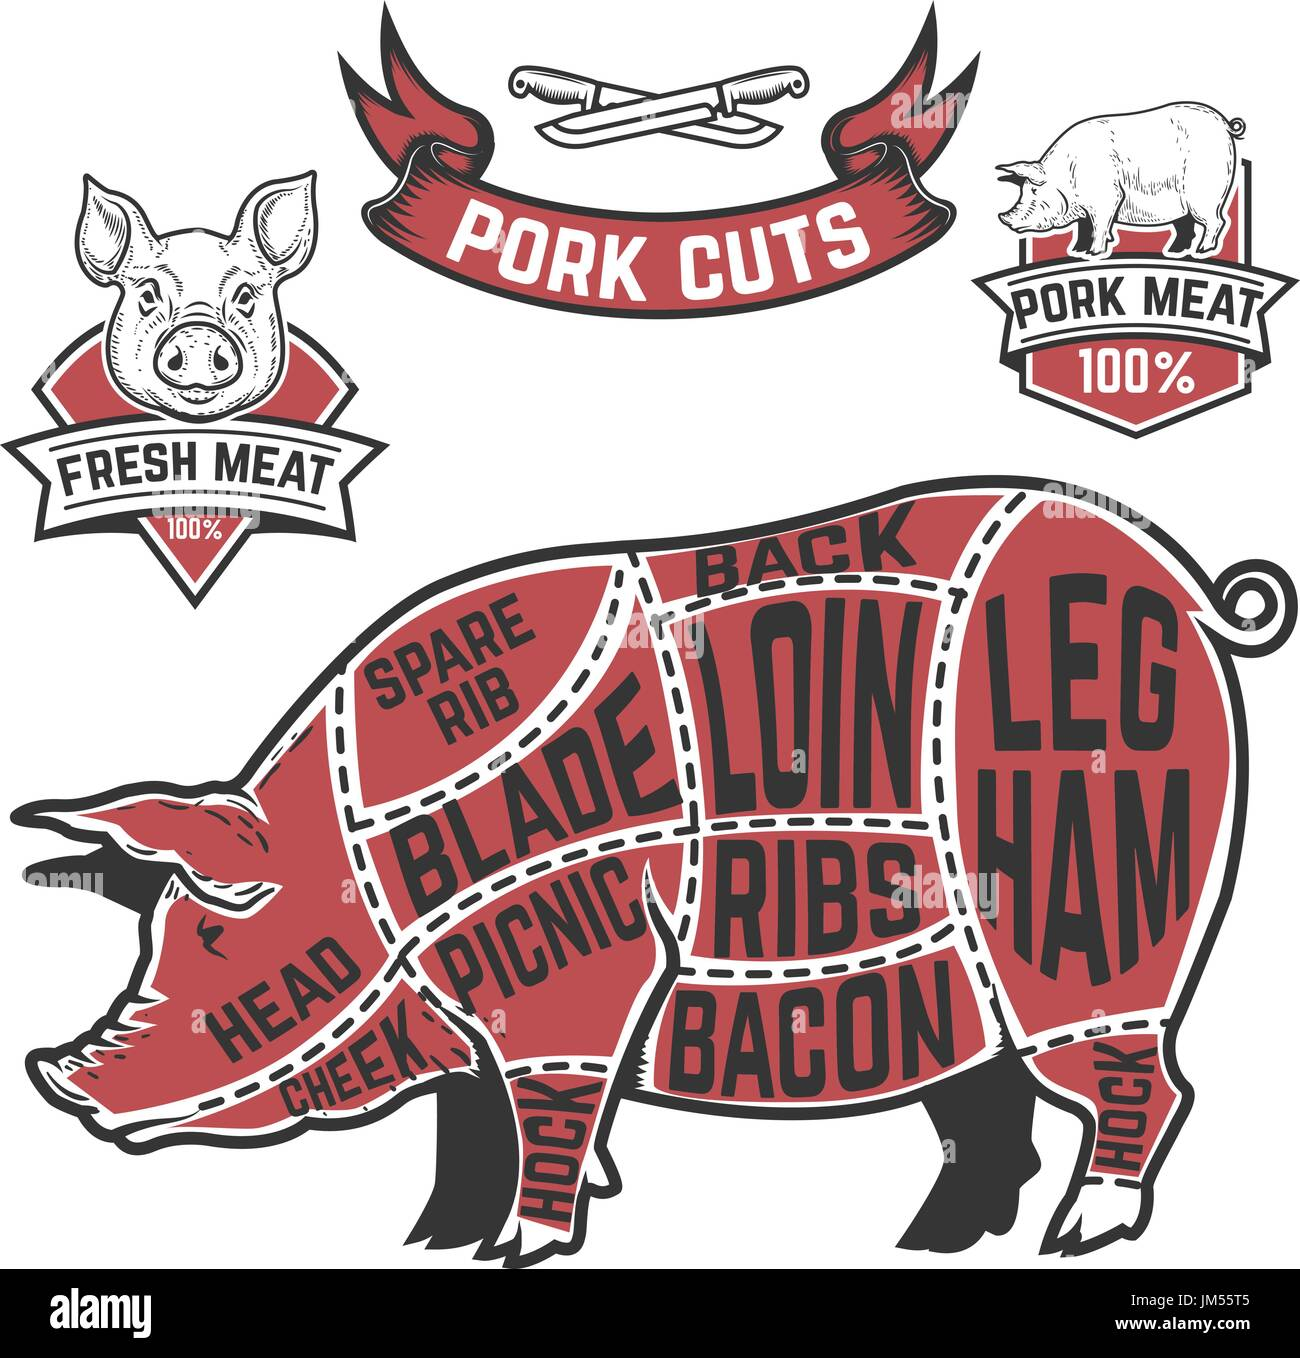 pork butcher cuts diagram how to read building wiring cow illustrations on white background design elements for poster menu vector illustration